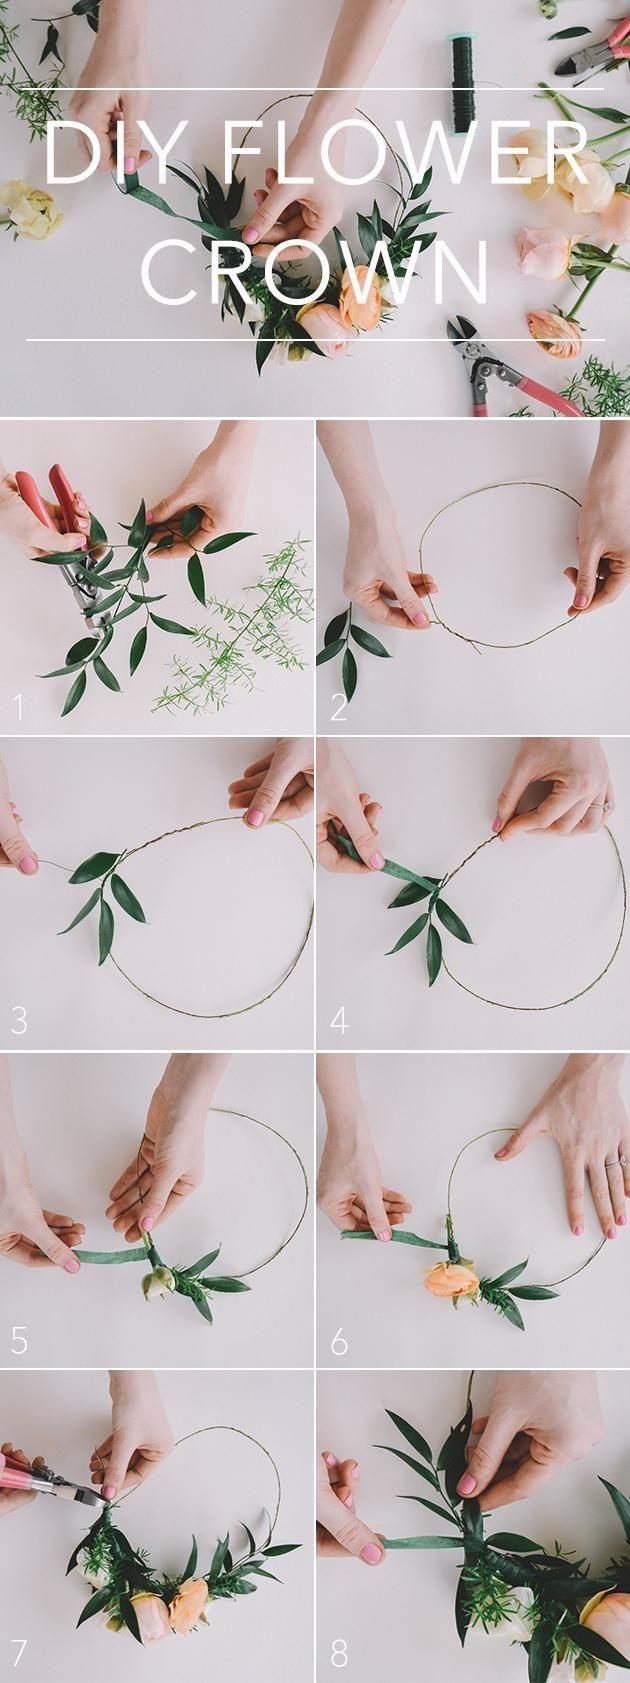 Wedding - How To DIY And Wear A Flower Crown For Your Wedding